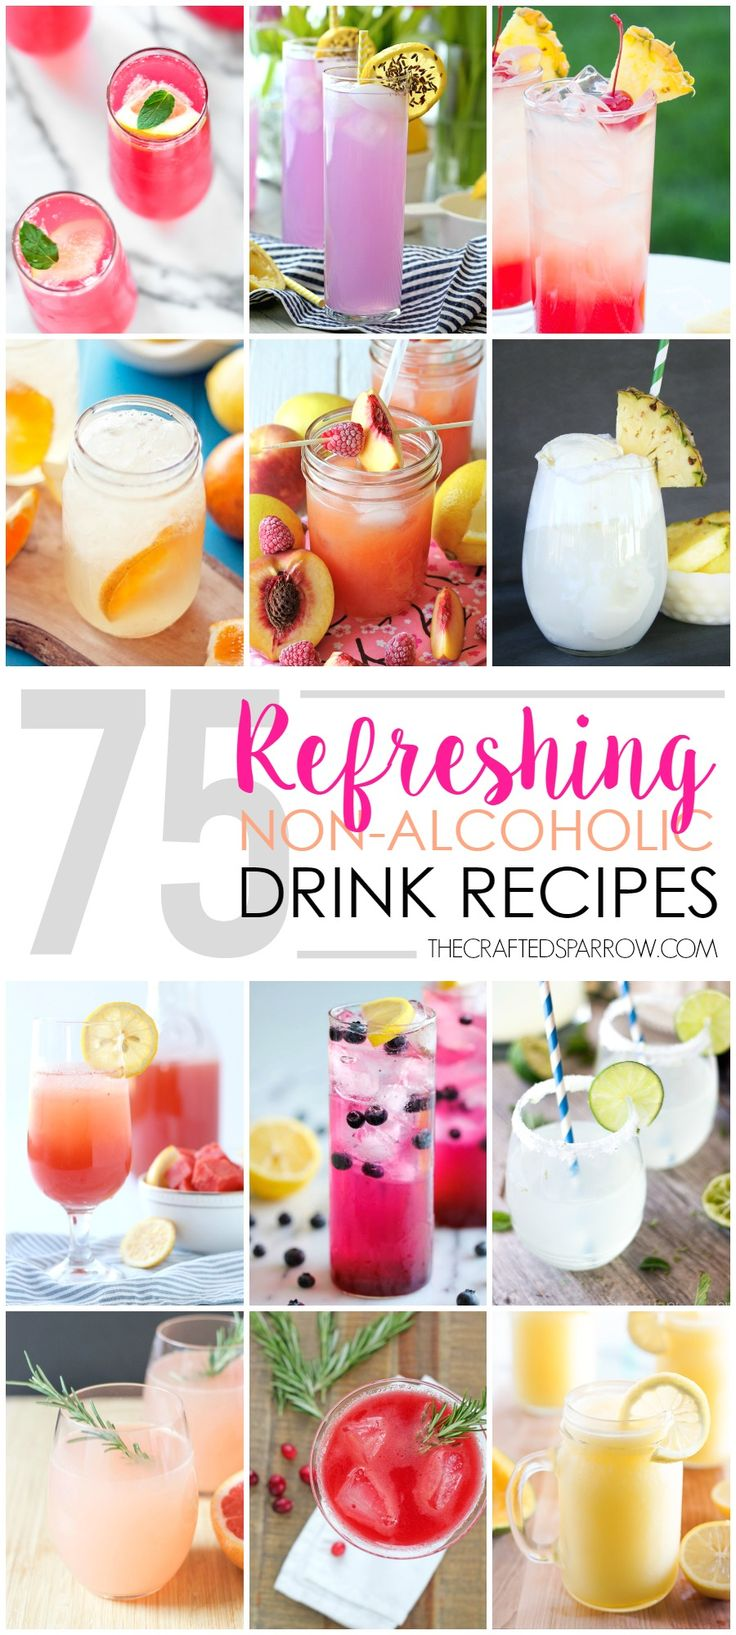 Cool off and stay hydrated with a non-alcoholic drink this summer, try one of these 75 Refreshing Non-Alcoholic Drink Recipes!